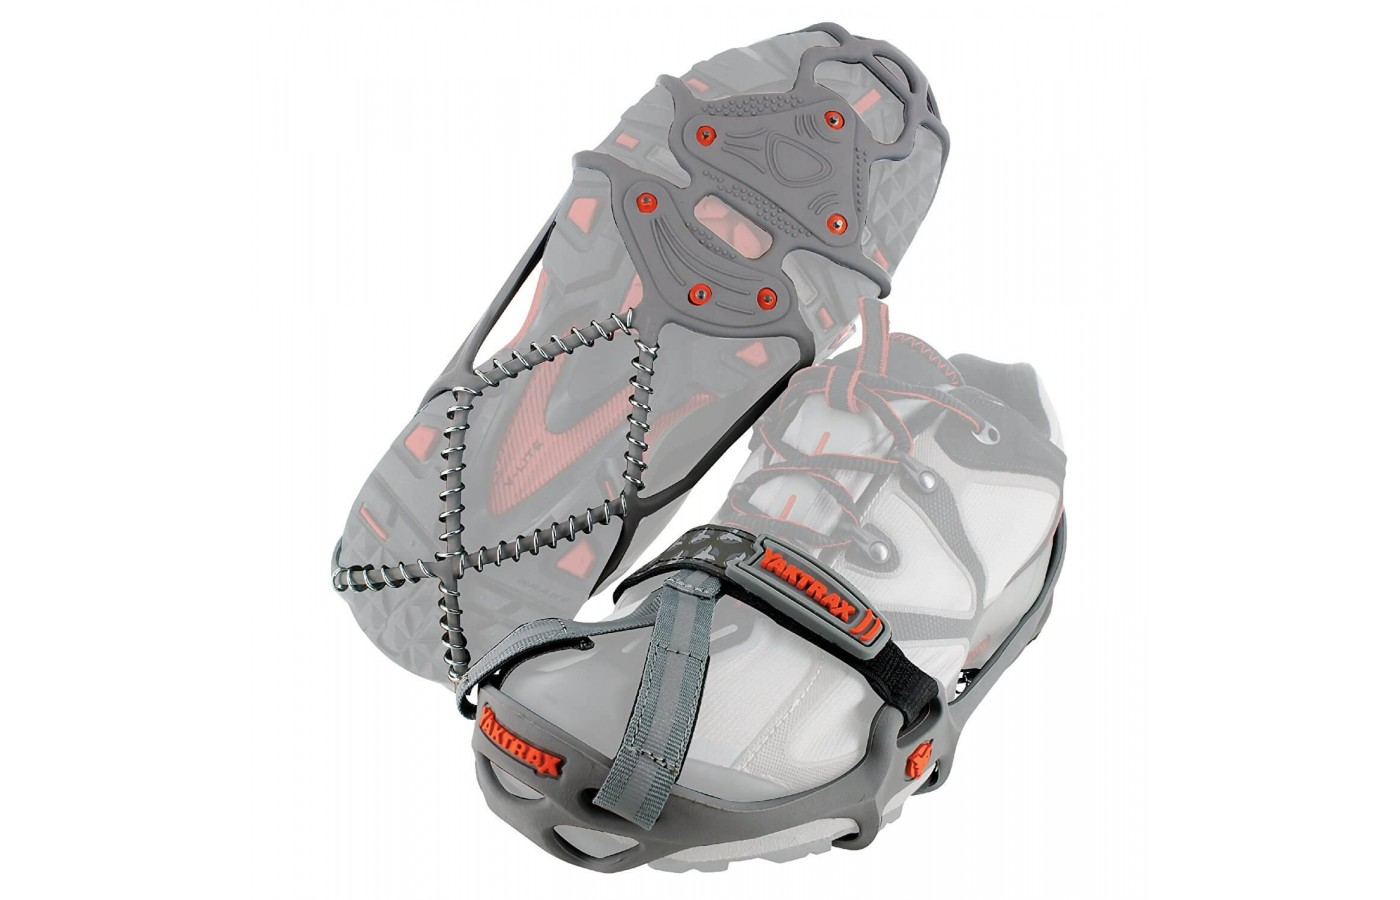 The traction devices come in sizes small, medium, large, and extra large to fit all foot sizes.